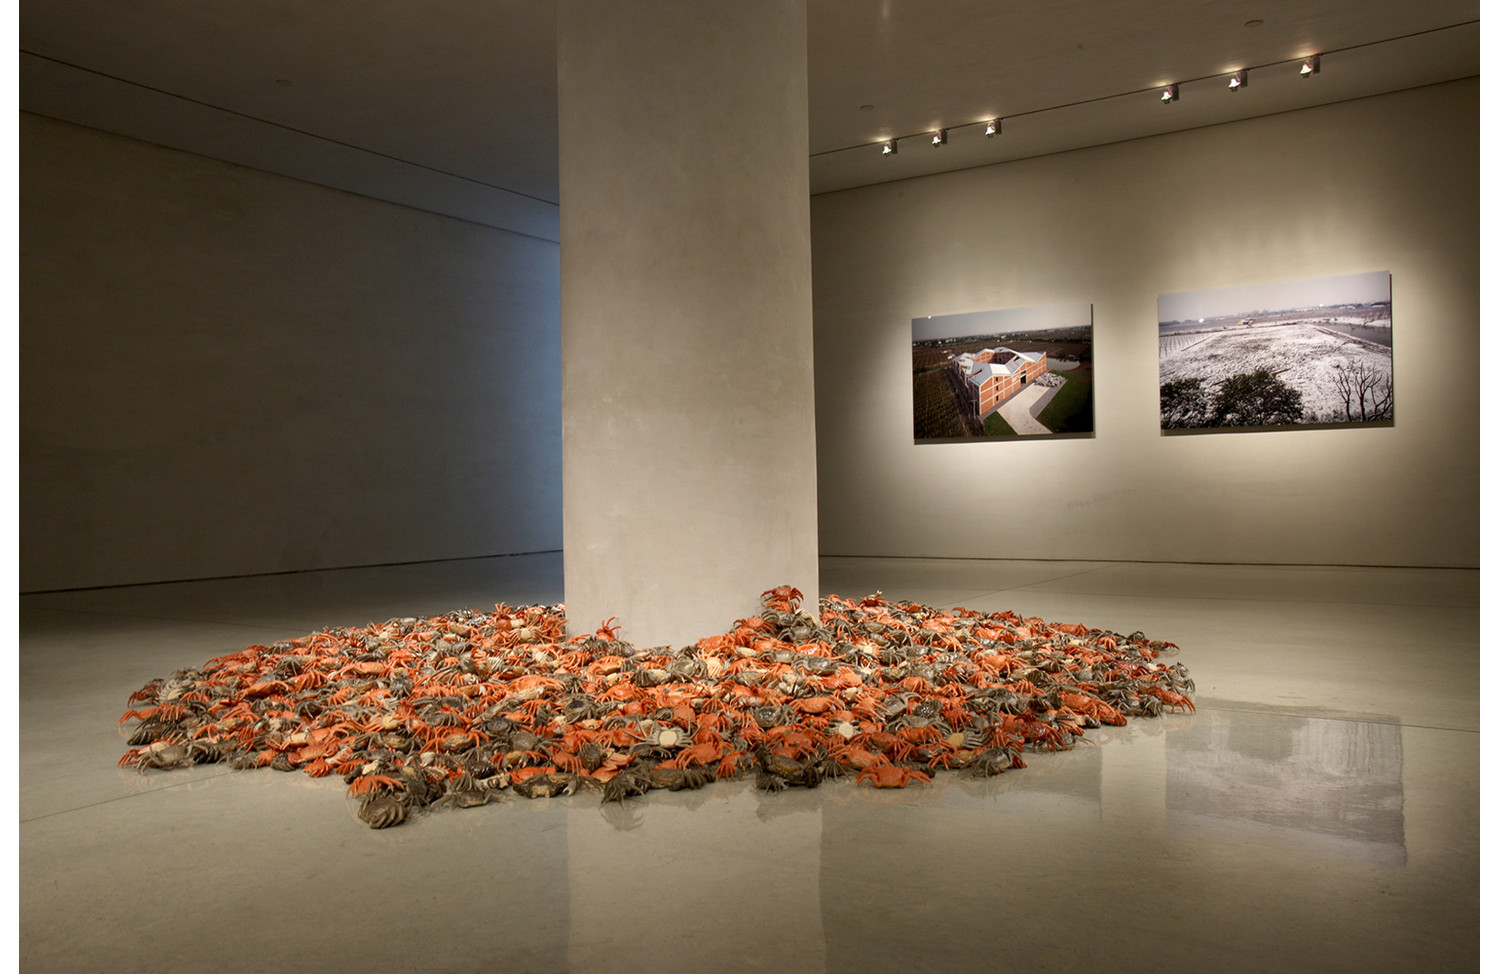 Ai Weiwei He Xie (River Crab) - View 2